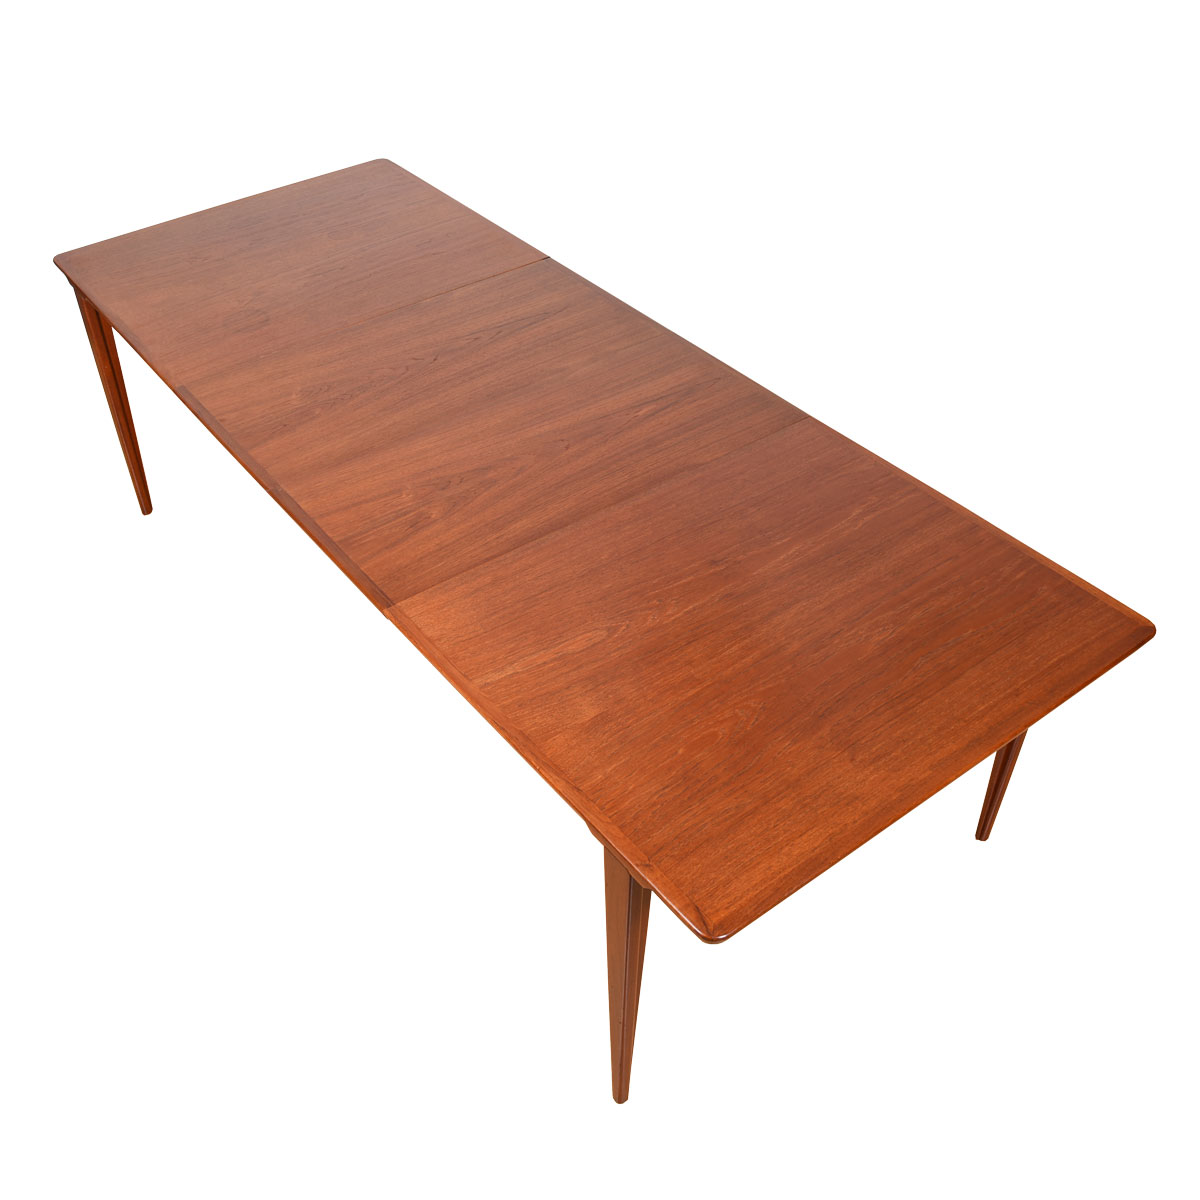 Illums Bolighus Danish Teak Expanding Dining Table w/ Sculpted Architectural Legs